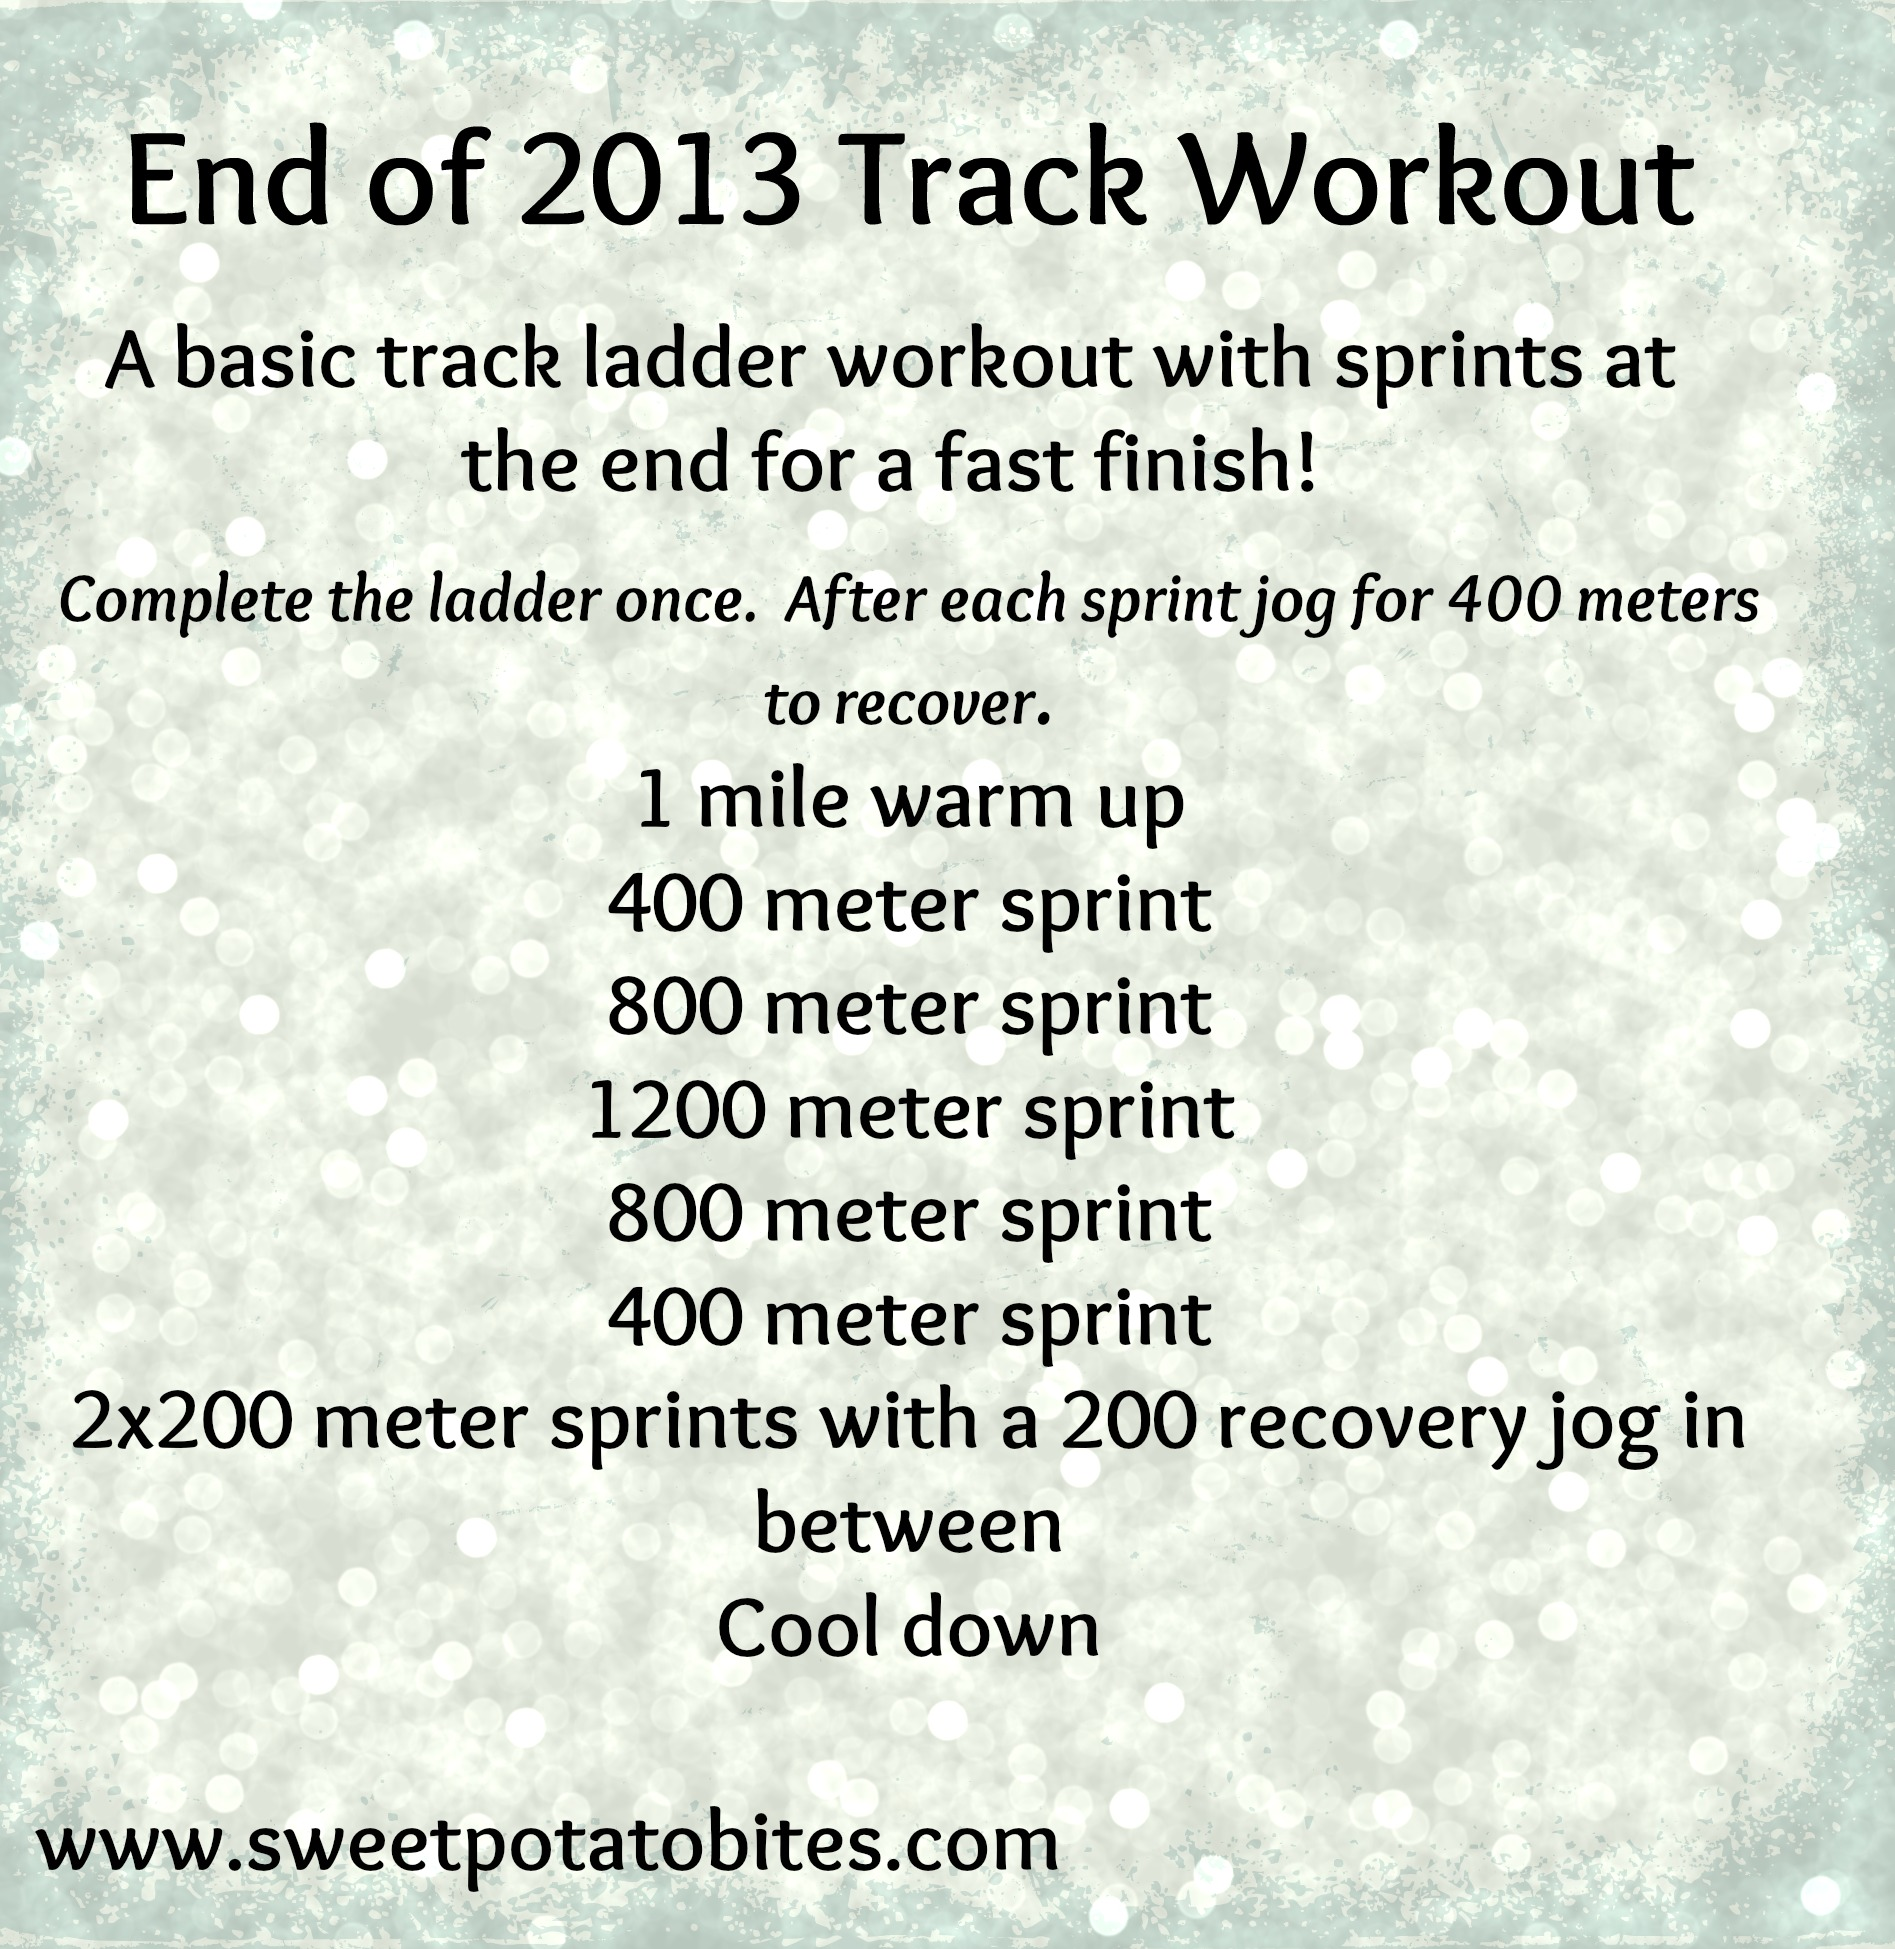 End of 2013 Track Workout